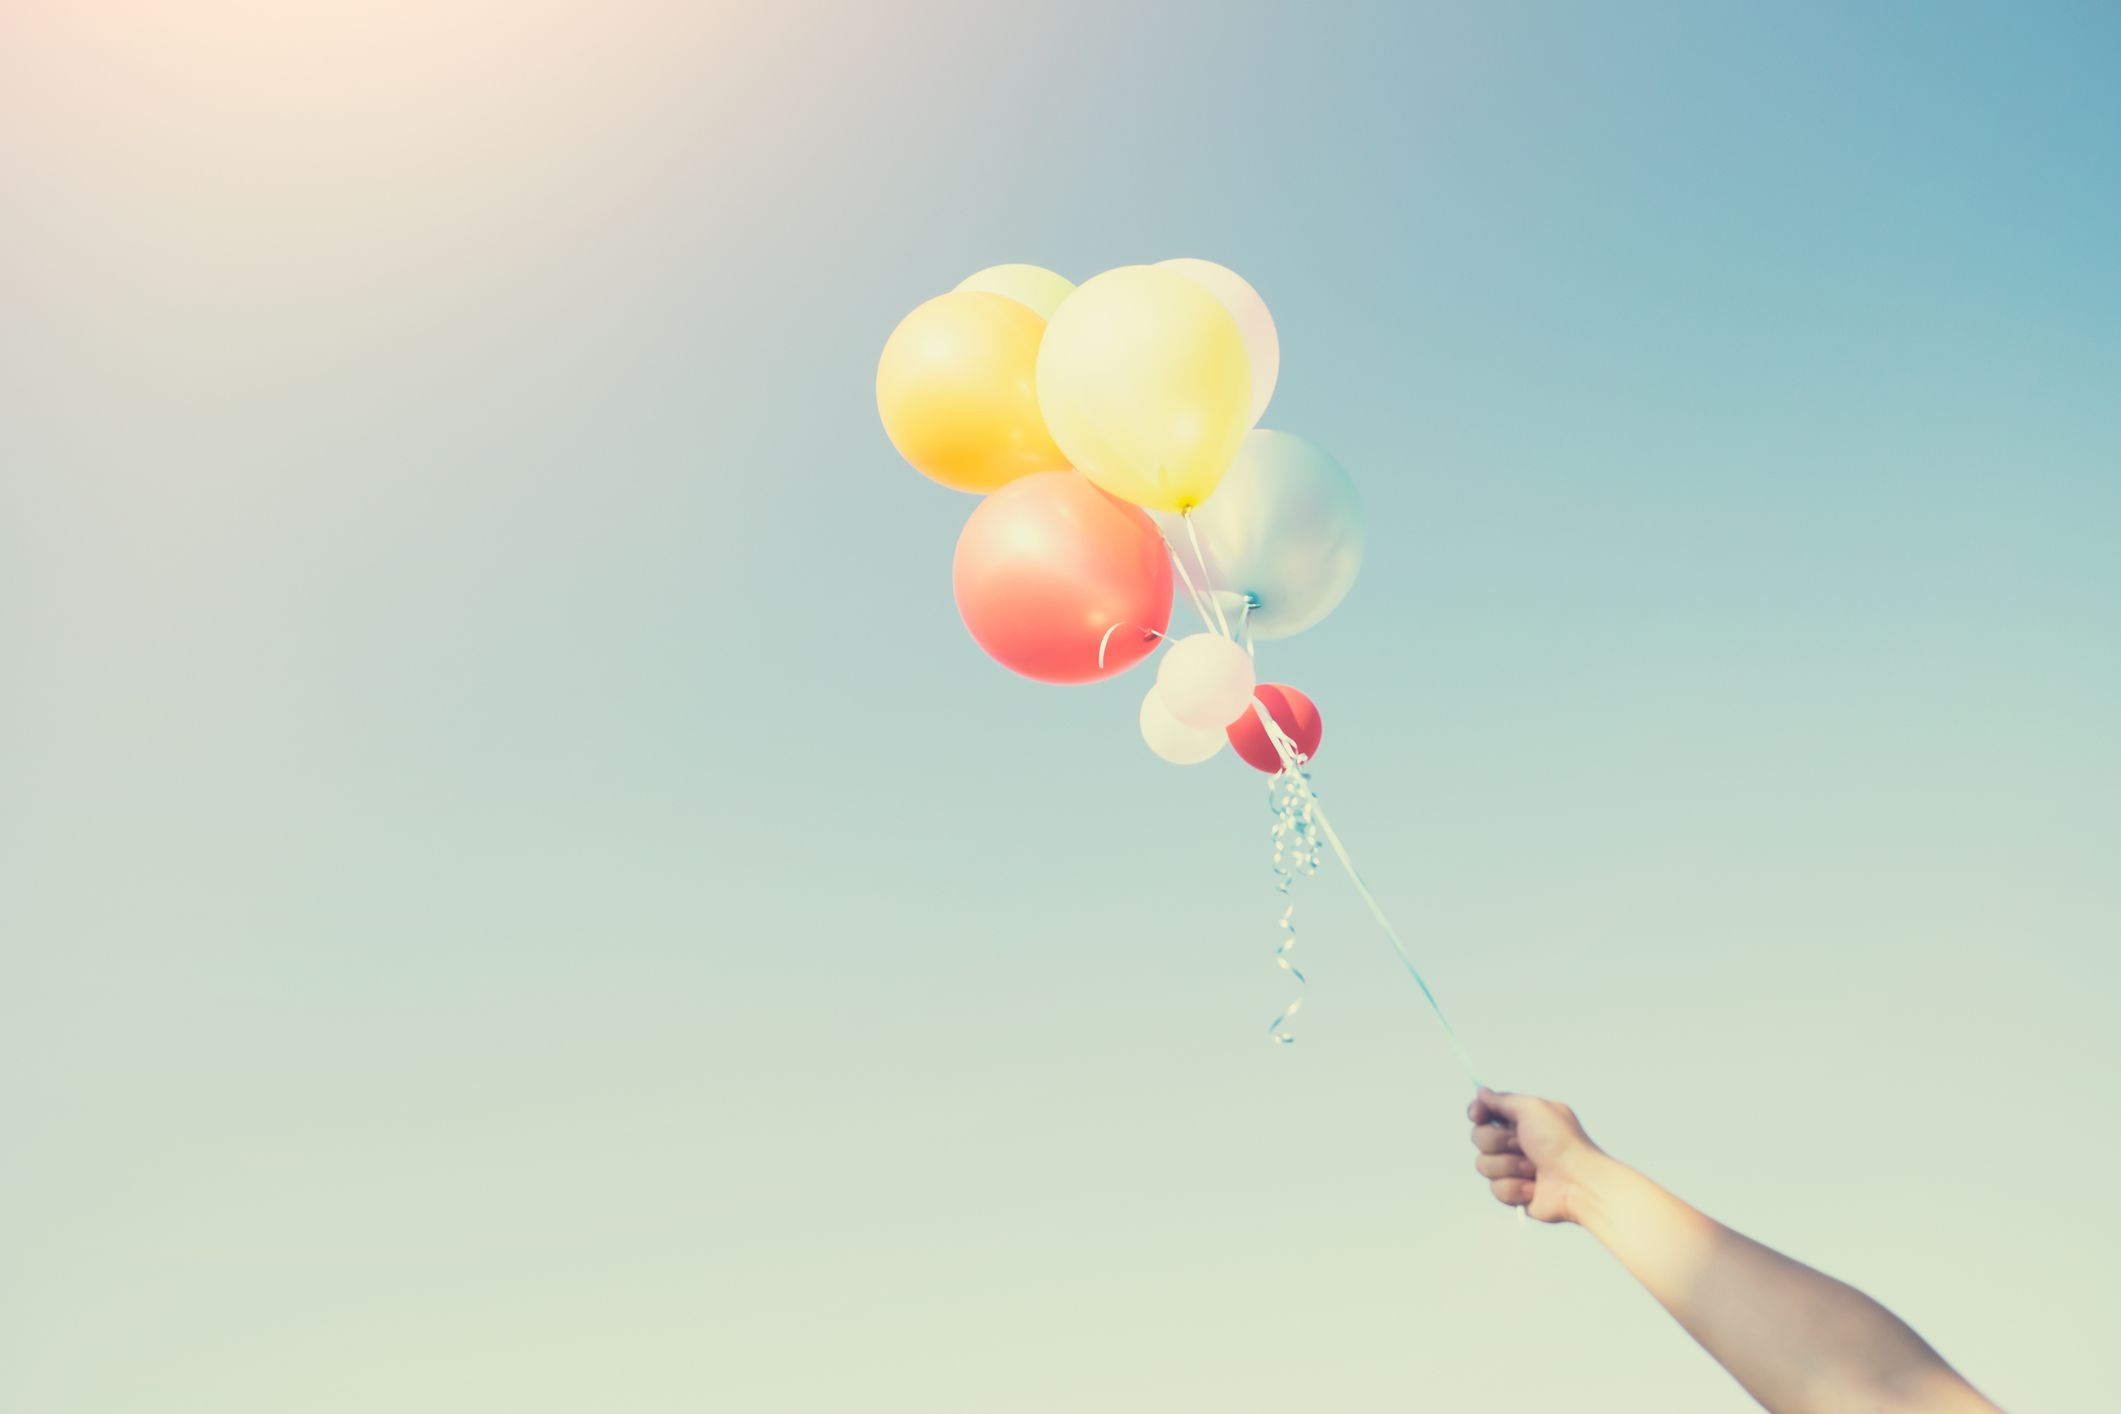 Person Letting Go of Balloons, Symbolizing Letting Go of Worries